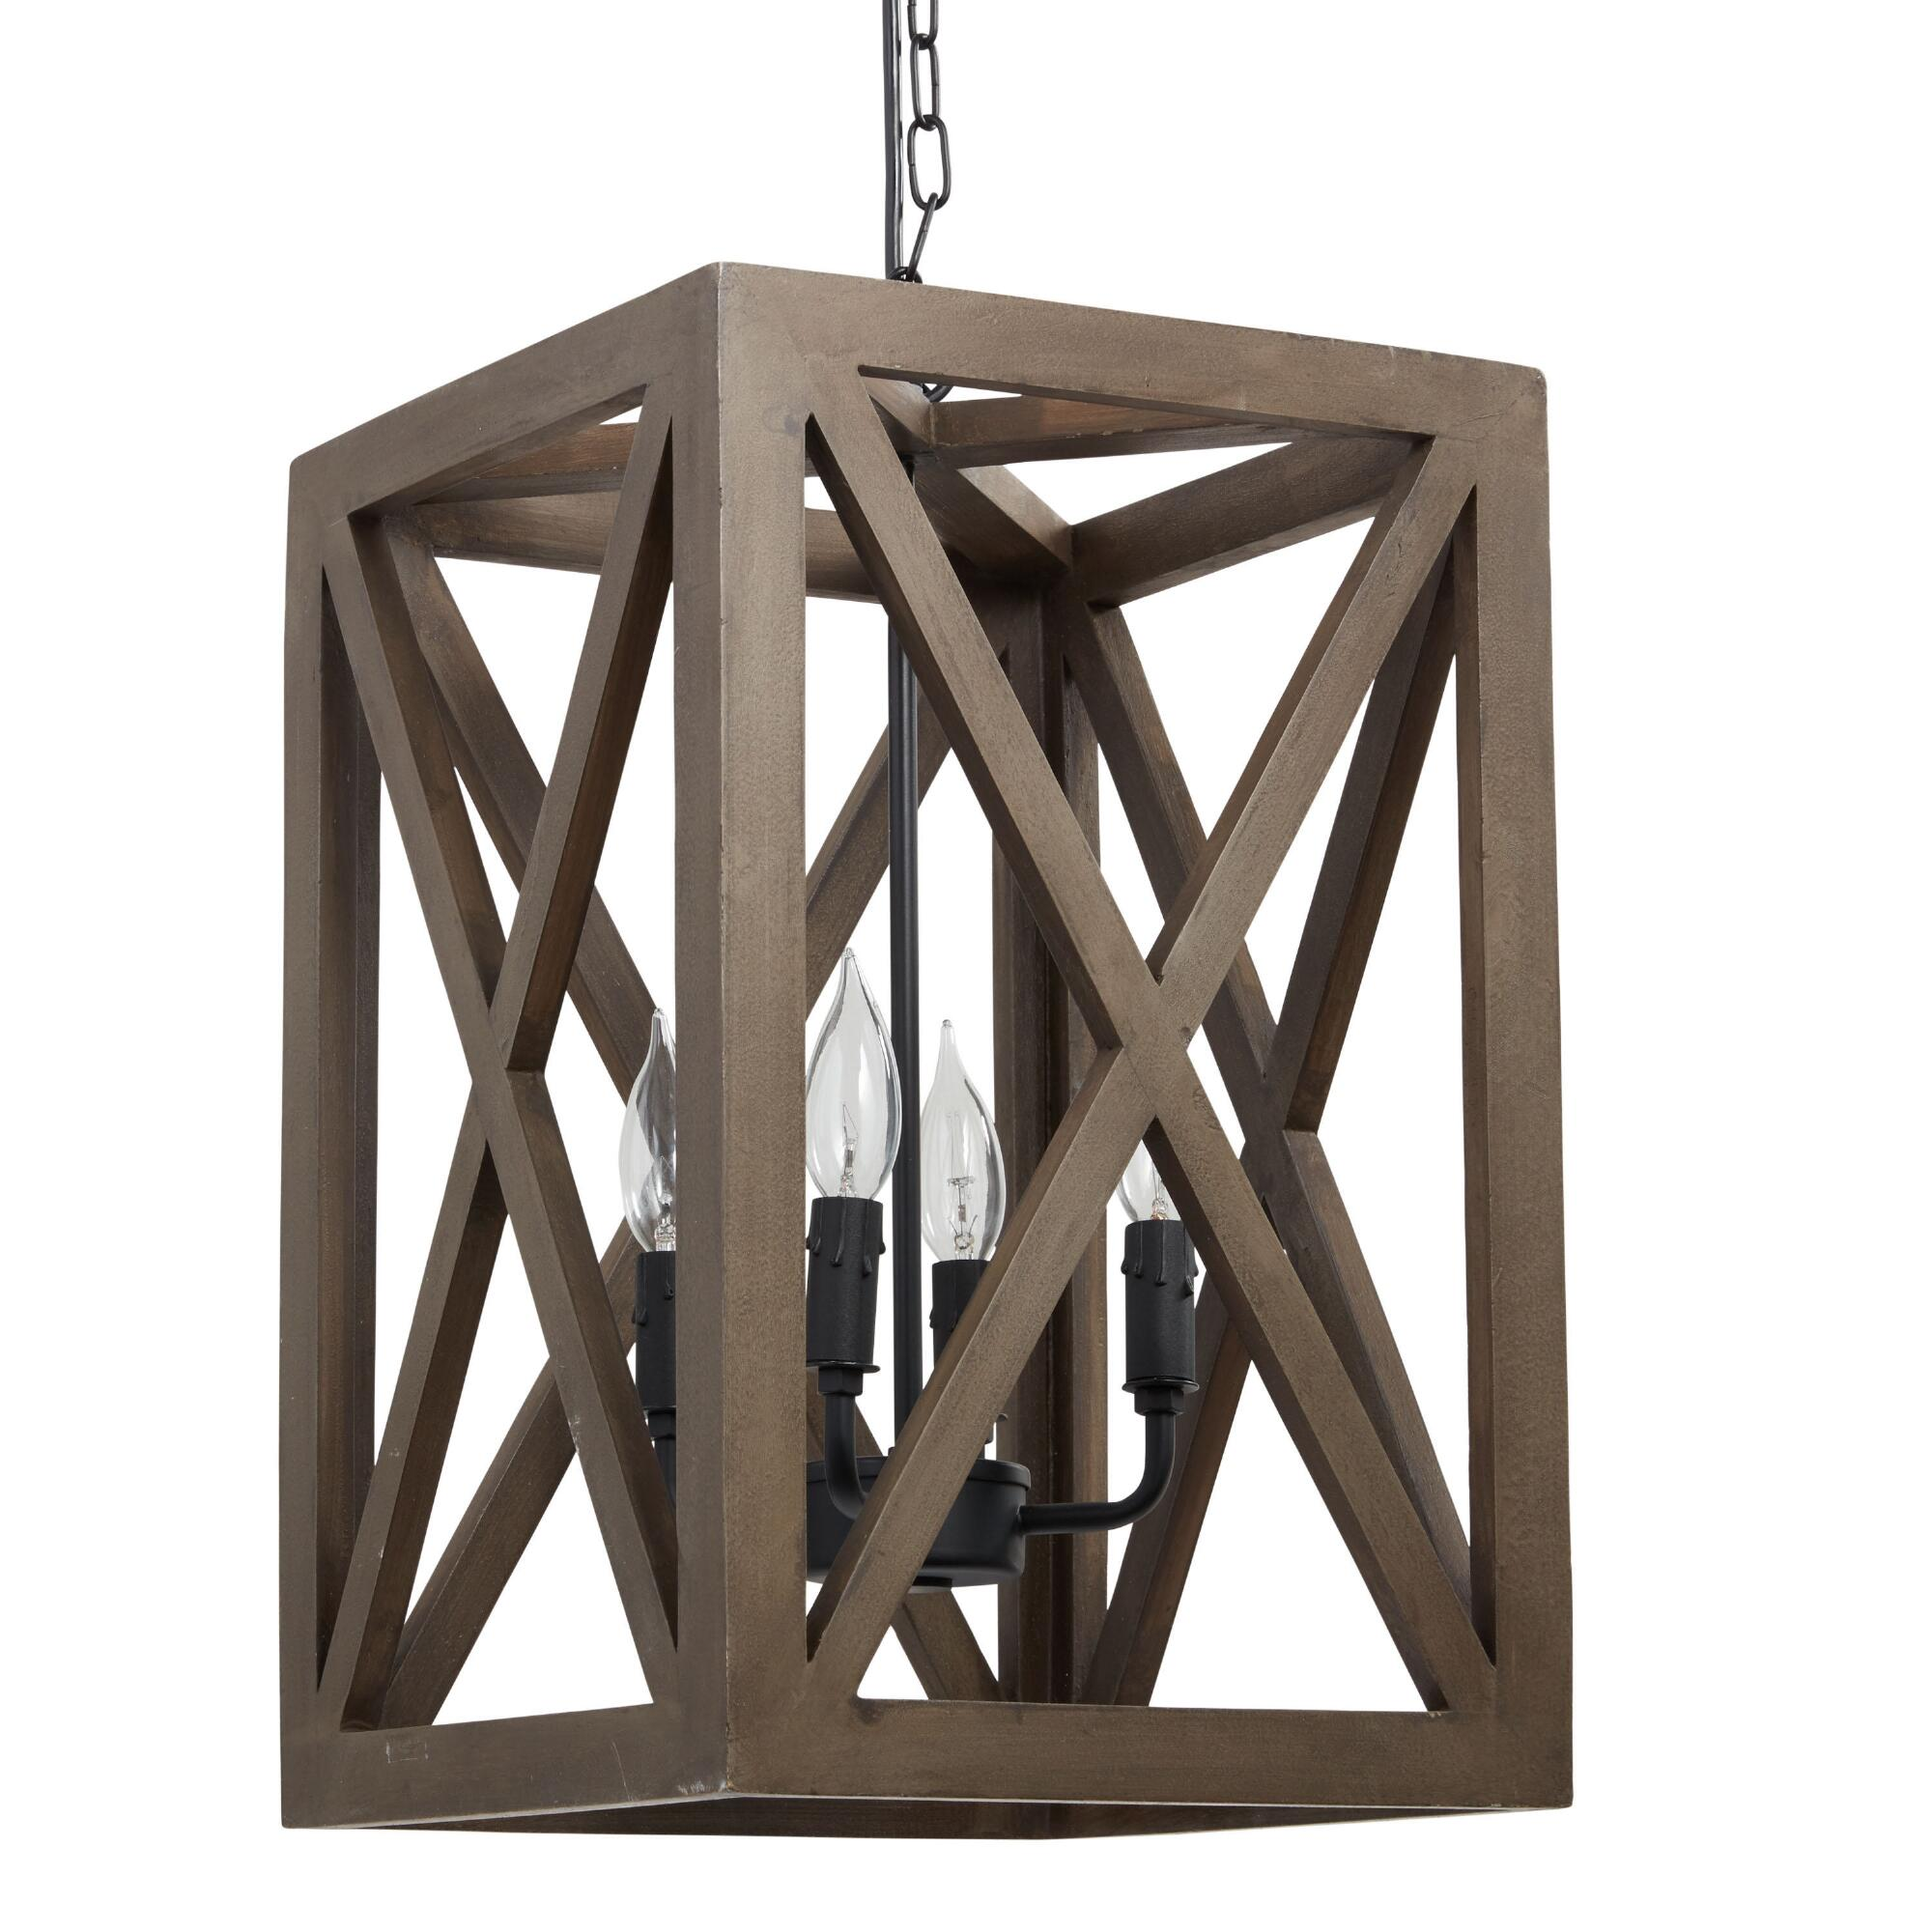 Gray Wood and Iron Valencia Chandelier by World Market